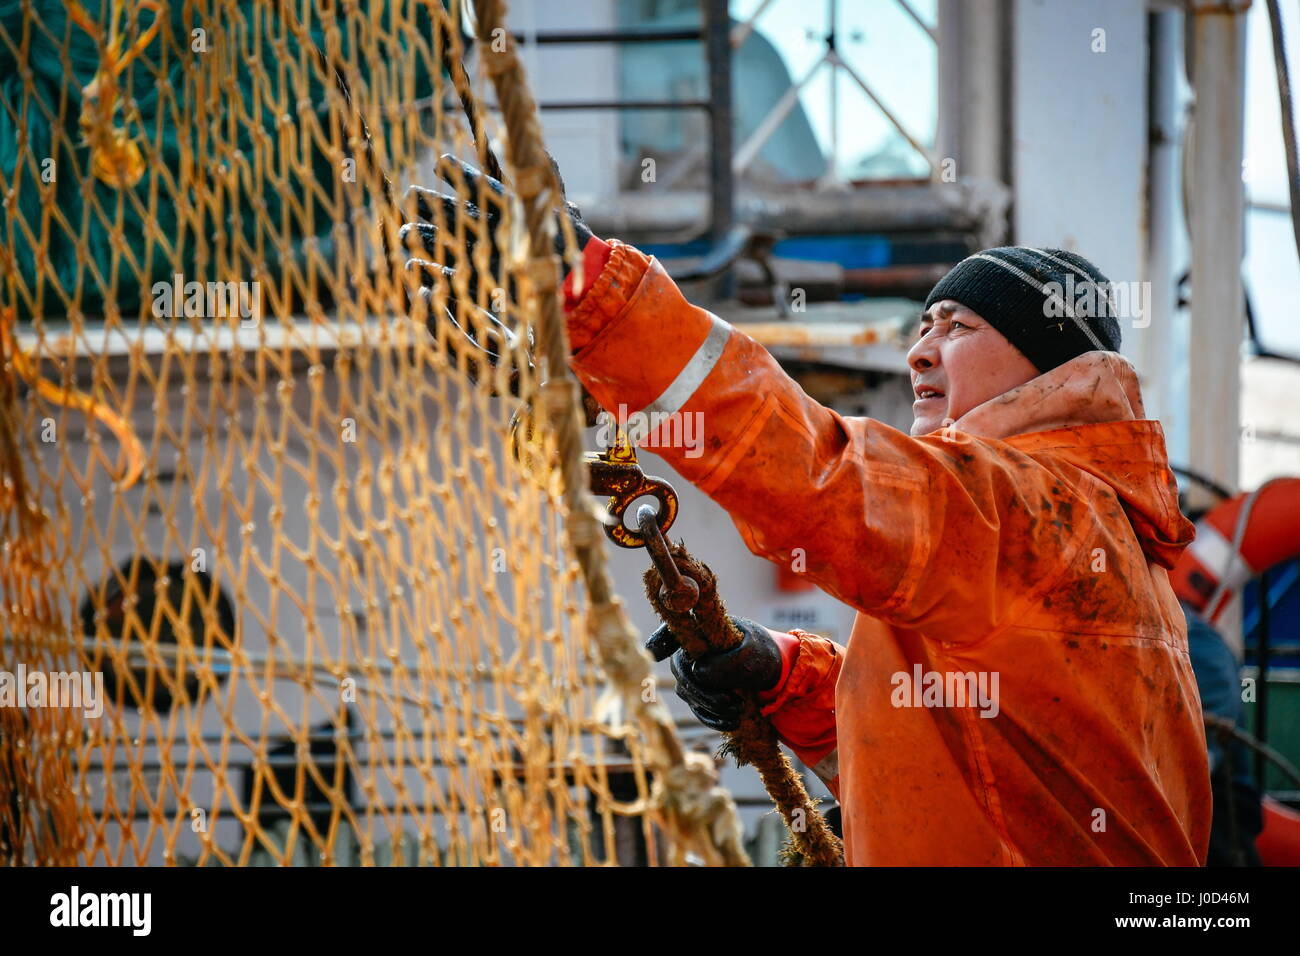 Primorye Territory, Russia. 11th Apr, 2017. A fisher prepares a seine net for throwing onboard an MRS-450 commercial - Stock Image